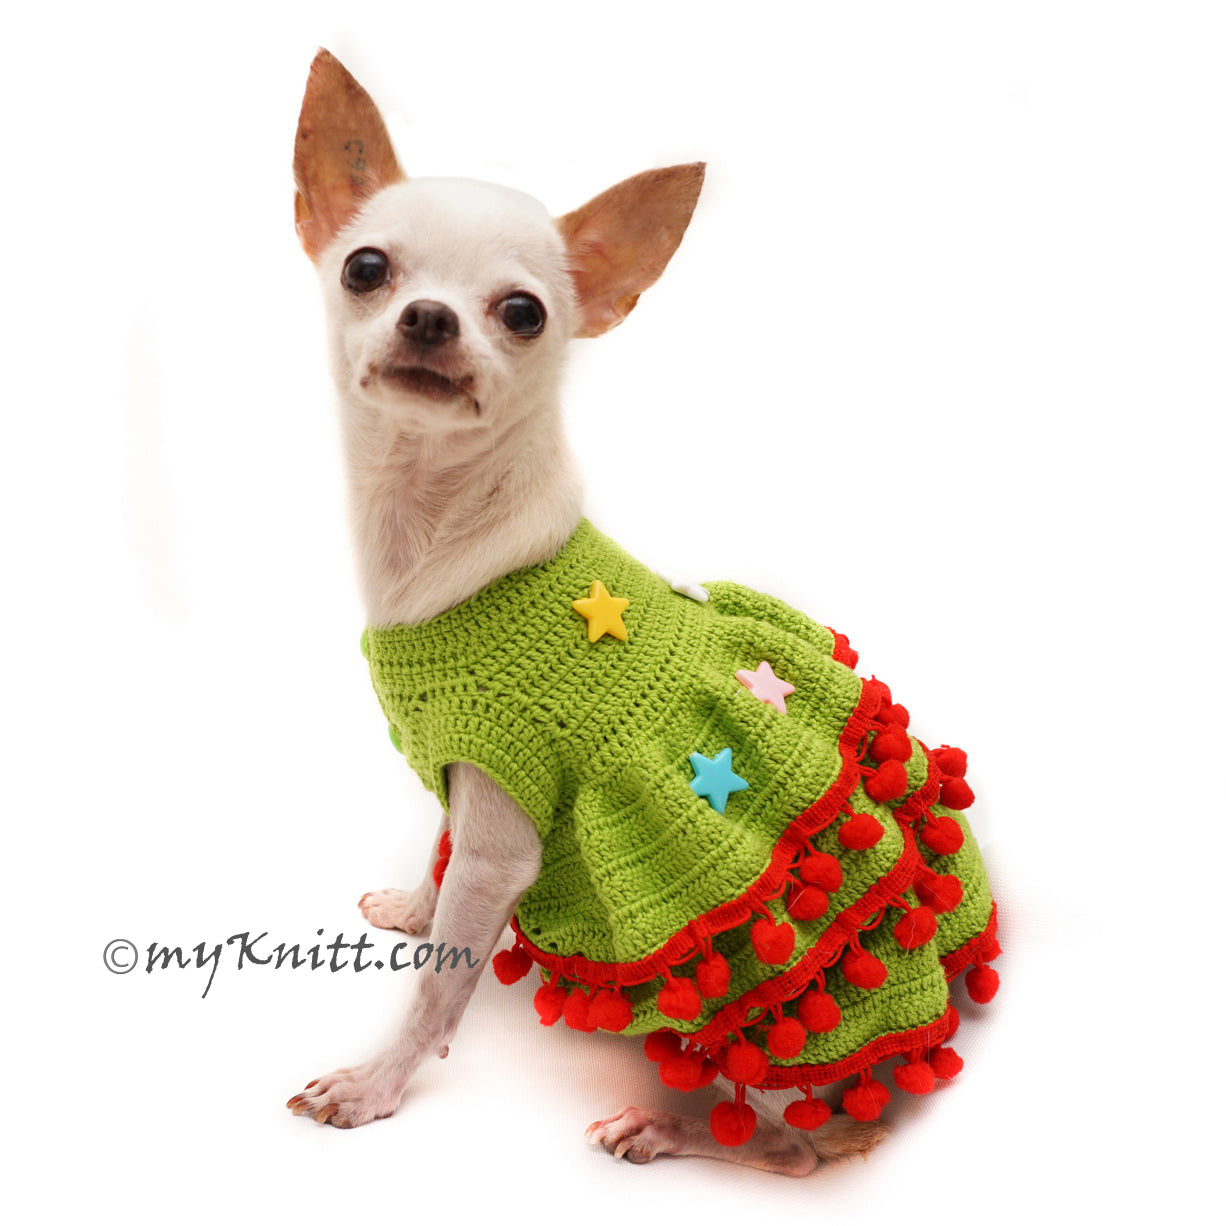 Christmas Tree Dog Dress Ruffled Crochet Holiday Pet Costume with Stars Apparel DF100 by Myknitt